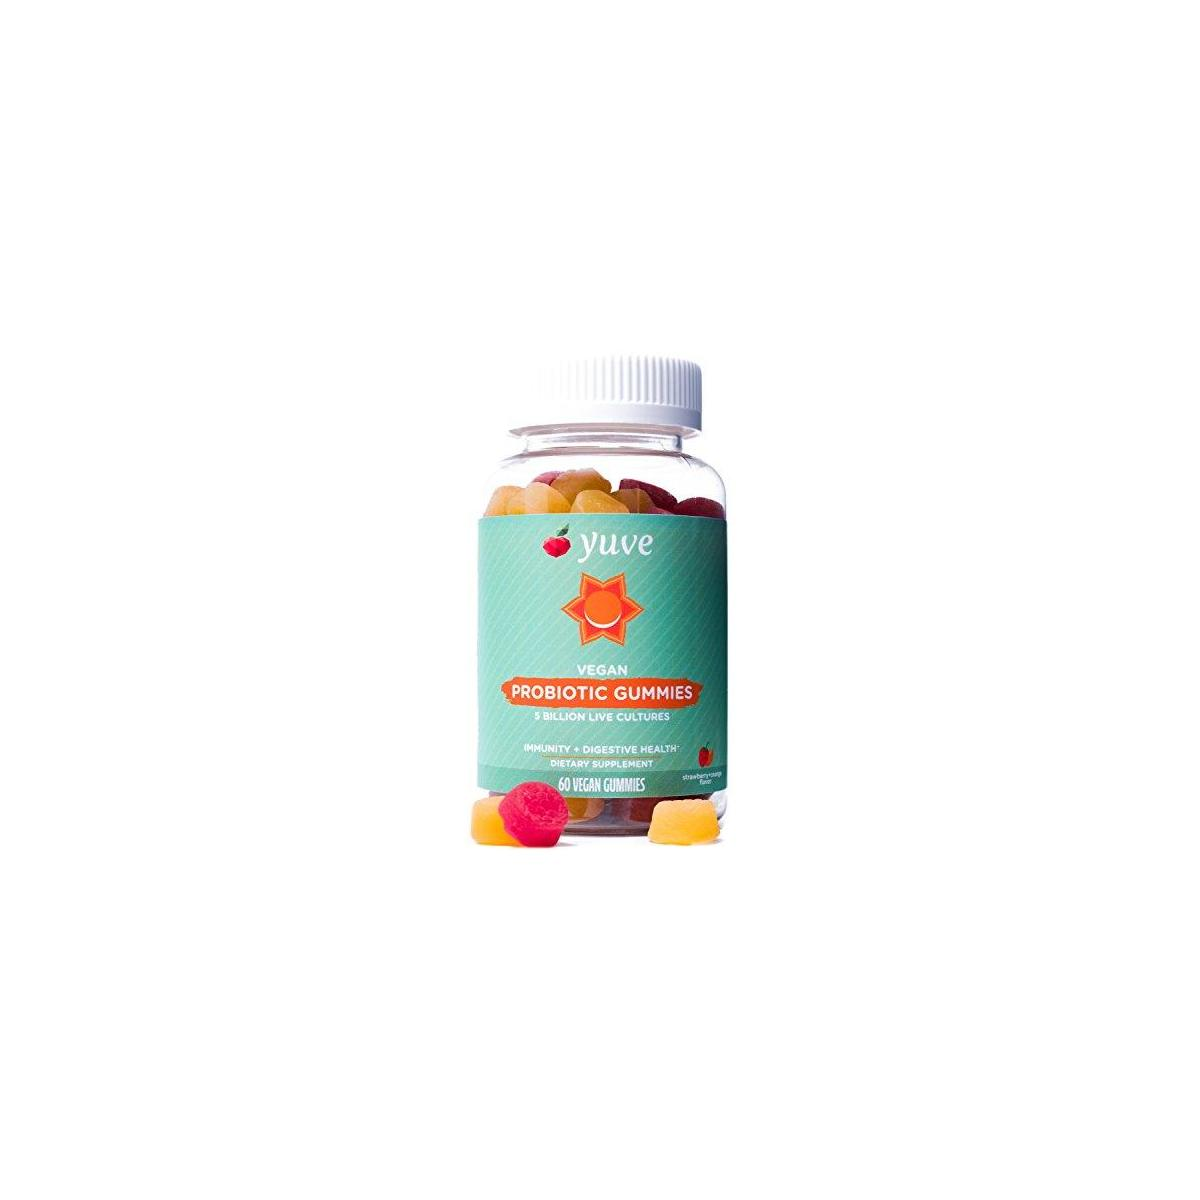 Yuve Vegan Probiotic Sugar-Free Gummies - 5 Billion CFU - Promotes Digestive Health & Immunity - Helps with Constipation, Bloating, Detox, Leaky Gut & Gas Relief - Natural, Non-GMO, Gluten-Free - 60ct